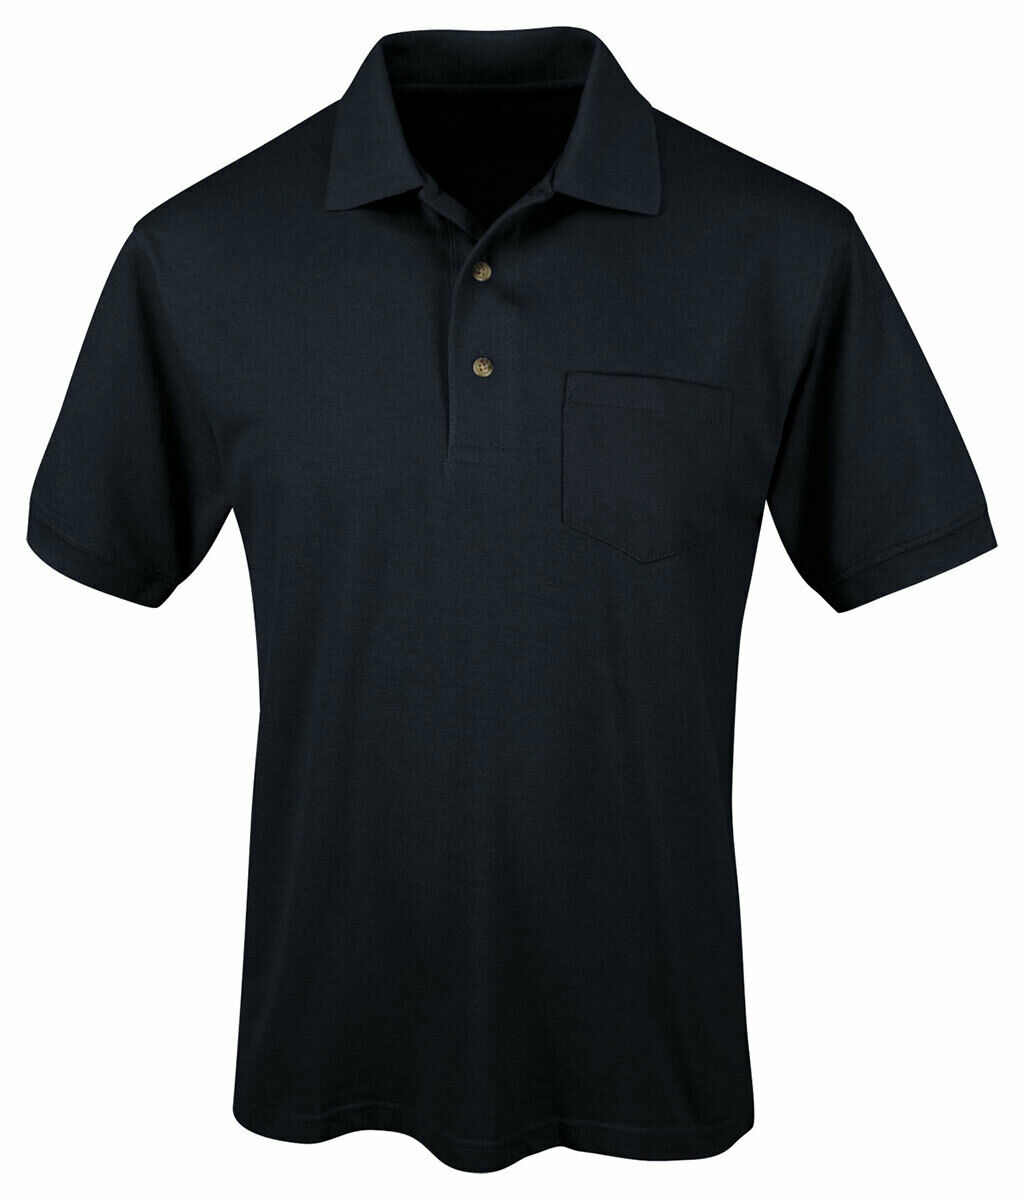 Tri mountain men 39 s big and tall short sleeve pocket sport for Big and tall polo t shirts